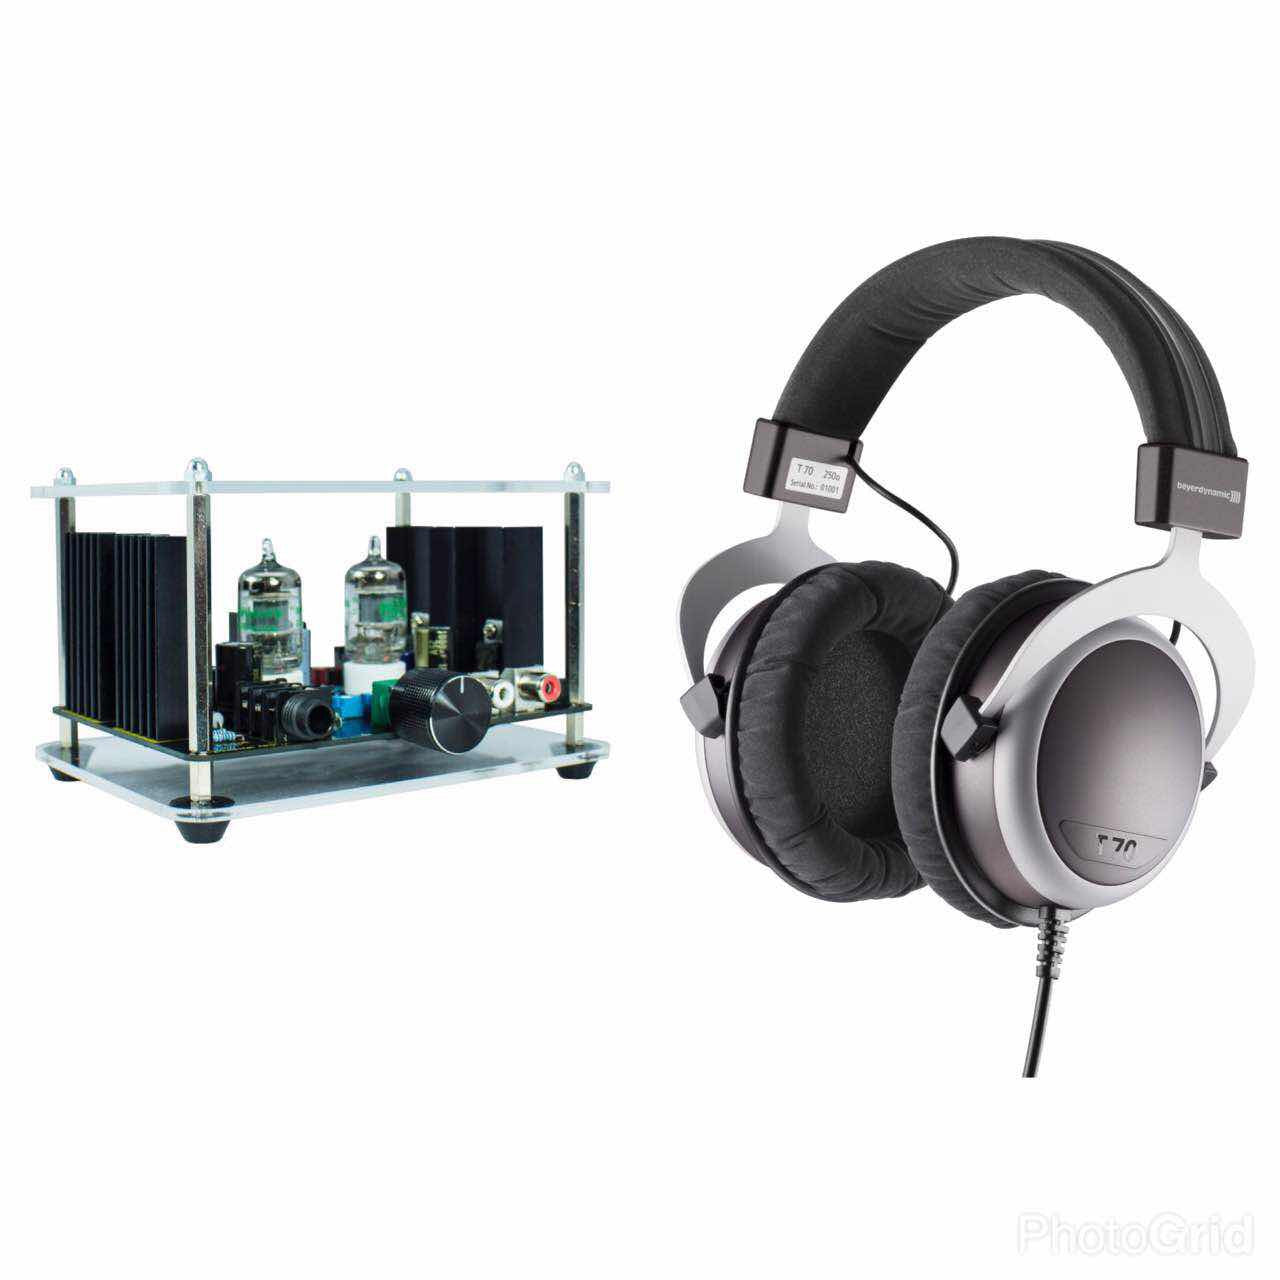 [Jaben Combo] Beyerdynamic T70(250 Ohm) Headphones & Elemental Watson II Tube Headphone Amplifier